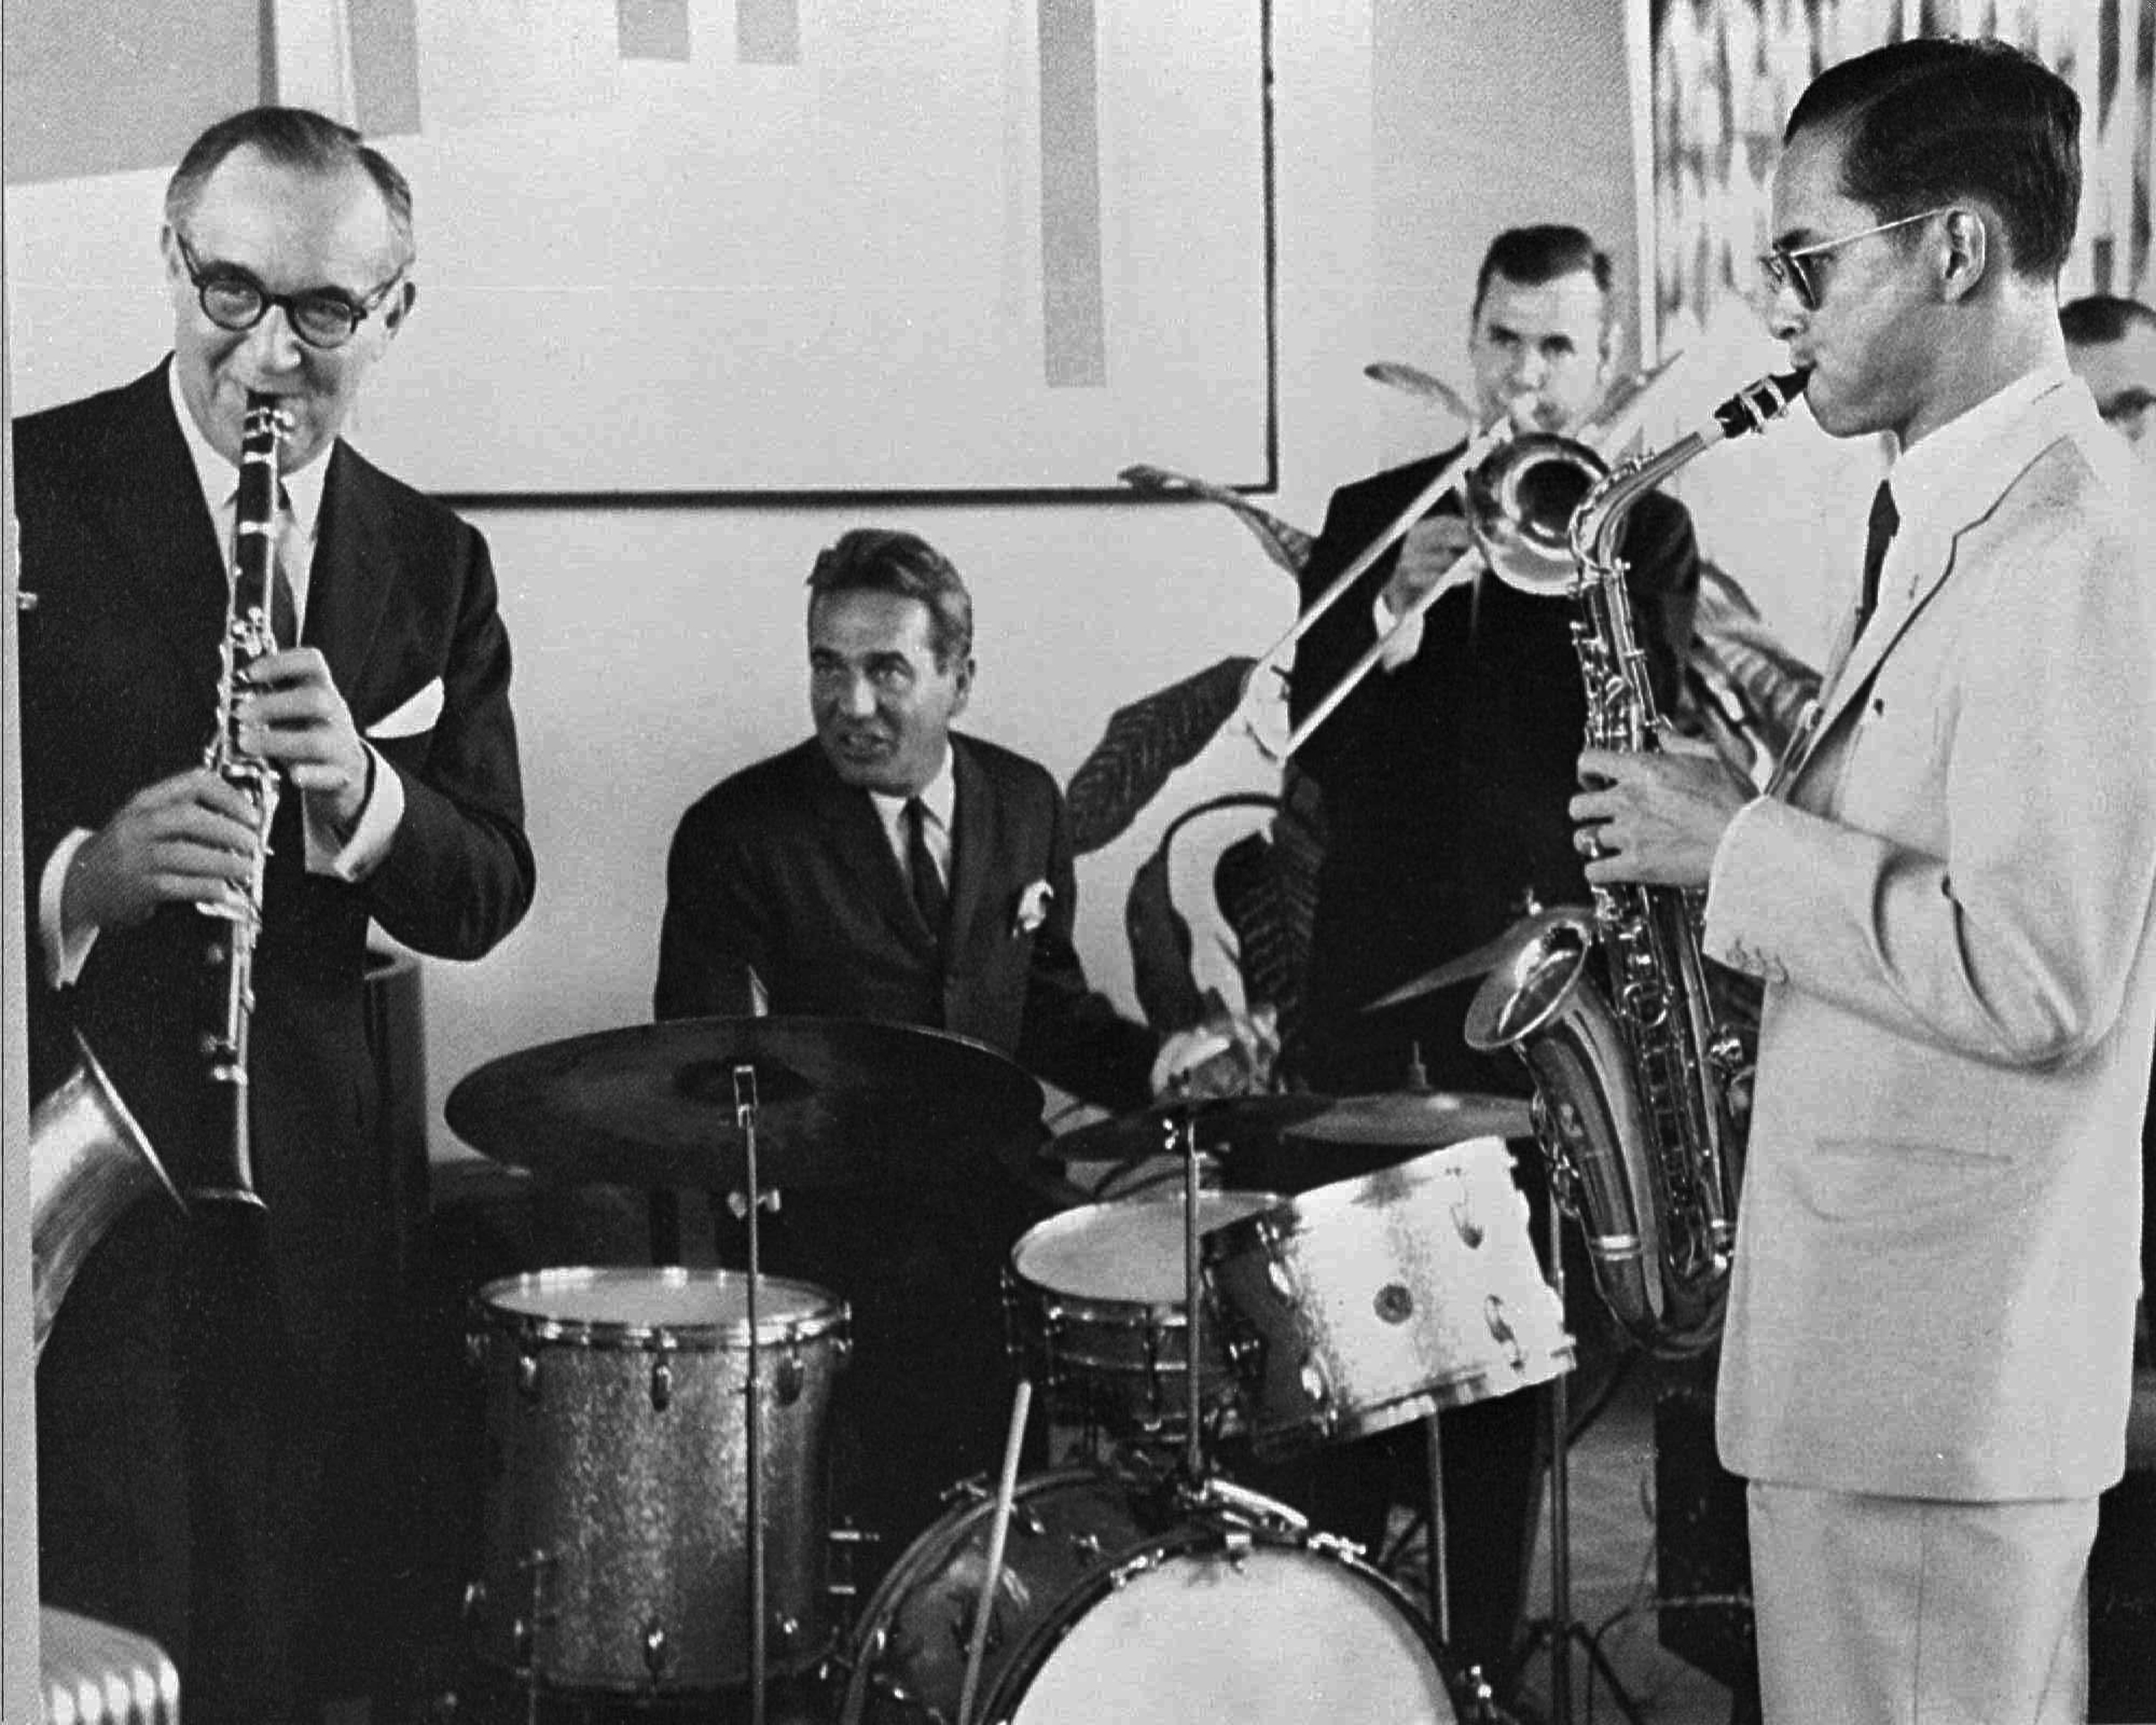 King Bhumibol Adulyadej, far right, plays the saxophone during a jam session with legendary jazz clarinetist Benny Goodman, far left, and his band in New York on July 5, 1960